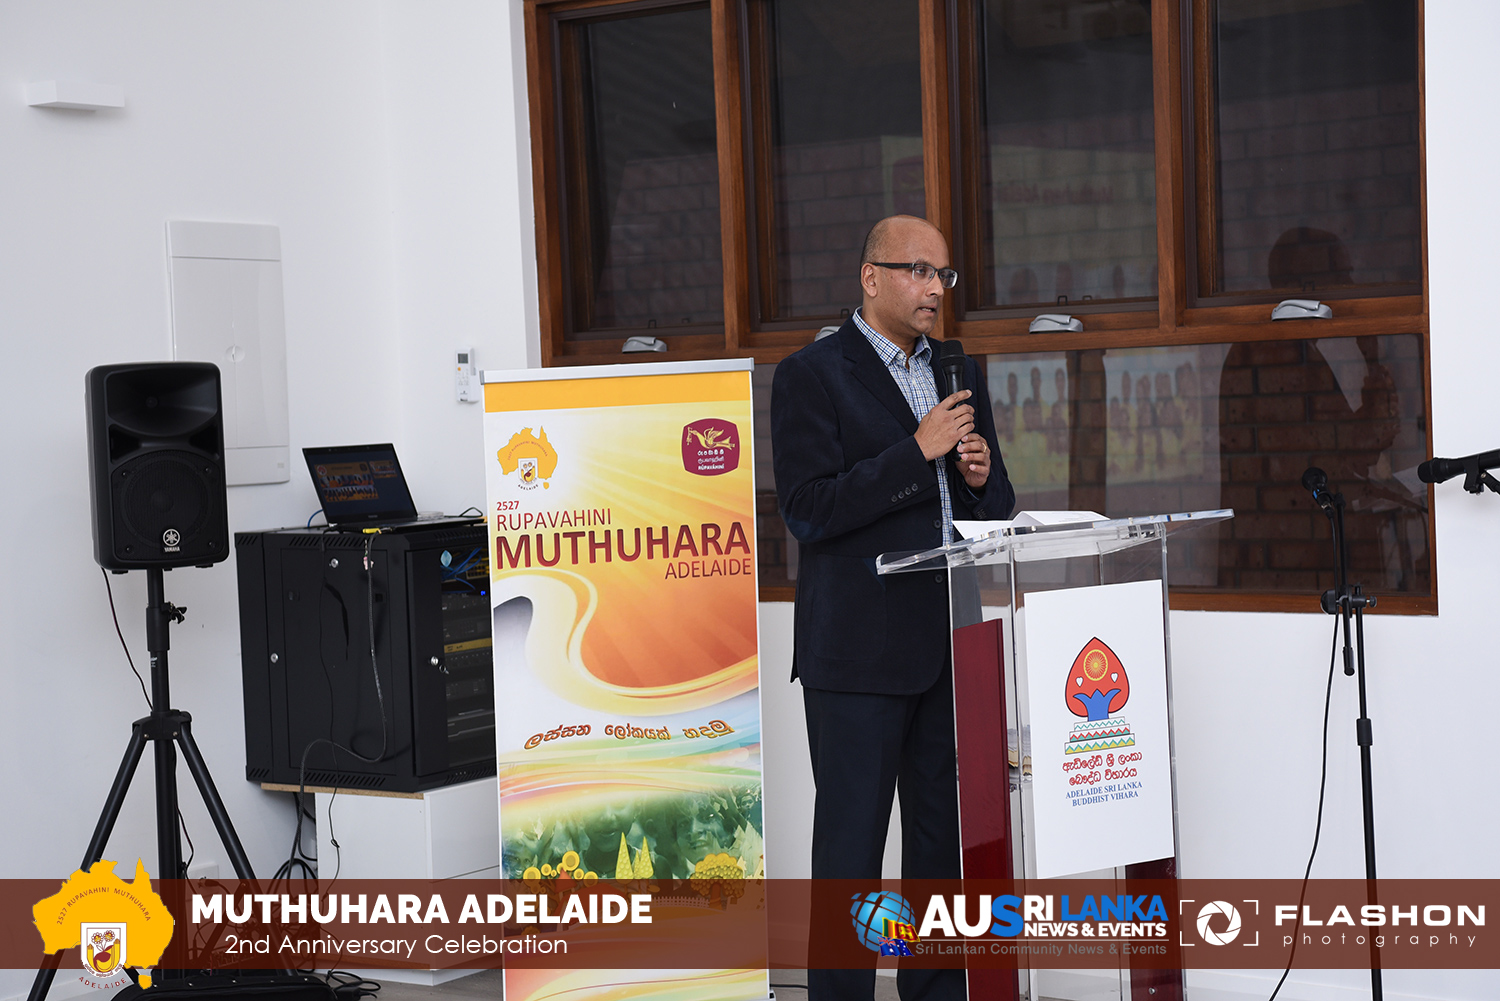 Celebration of the 2nd Anniversary of the 2527 Rupavahini